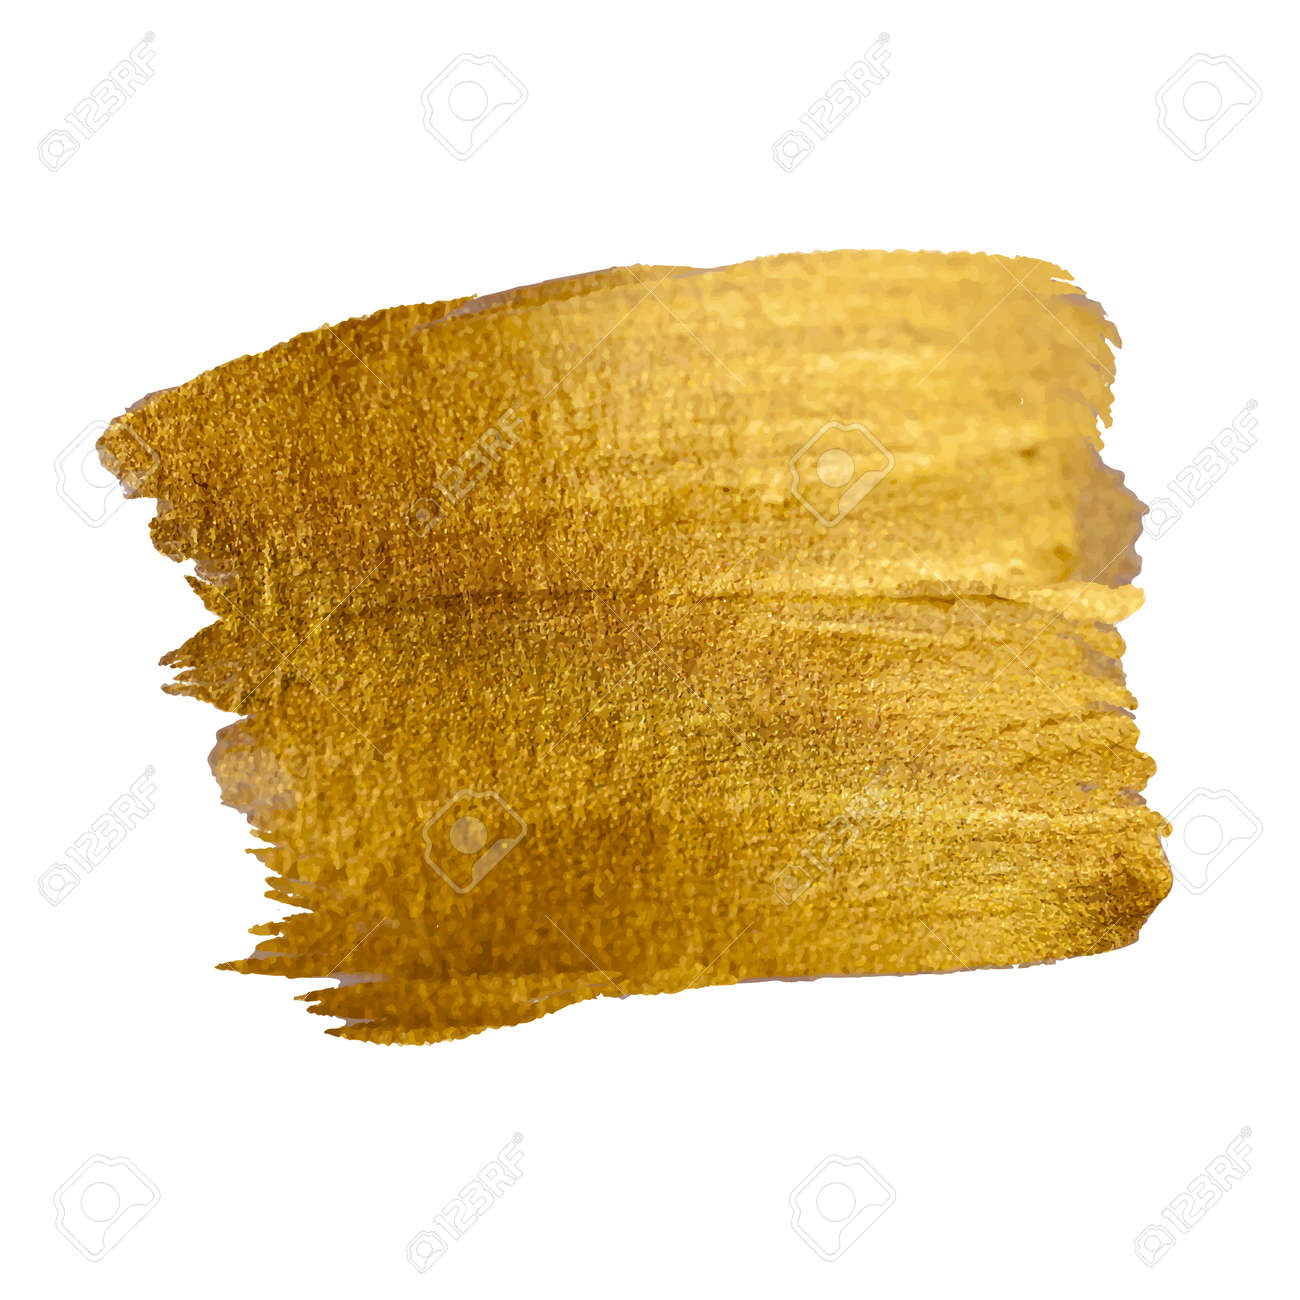 Gold Shining Paint Stain Hand Drawn Illustration - 43577358